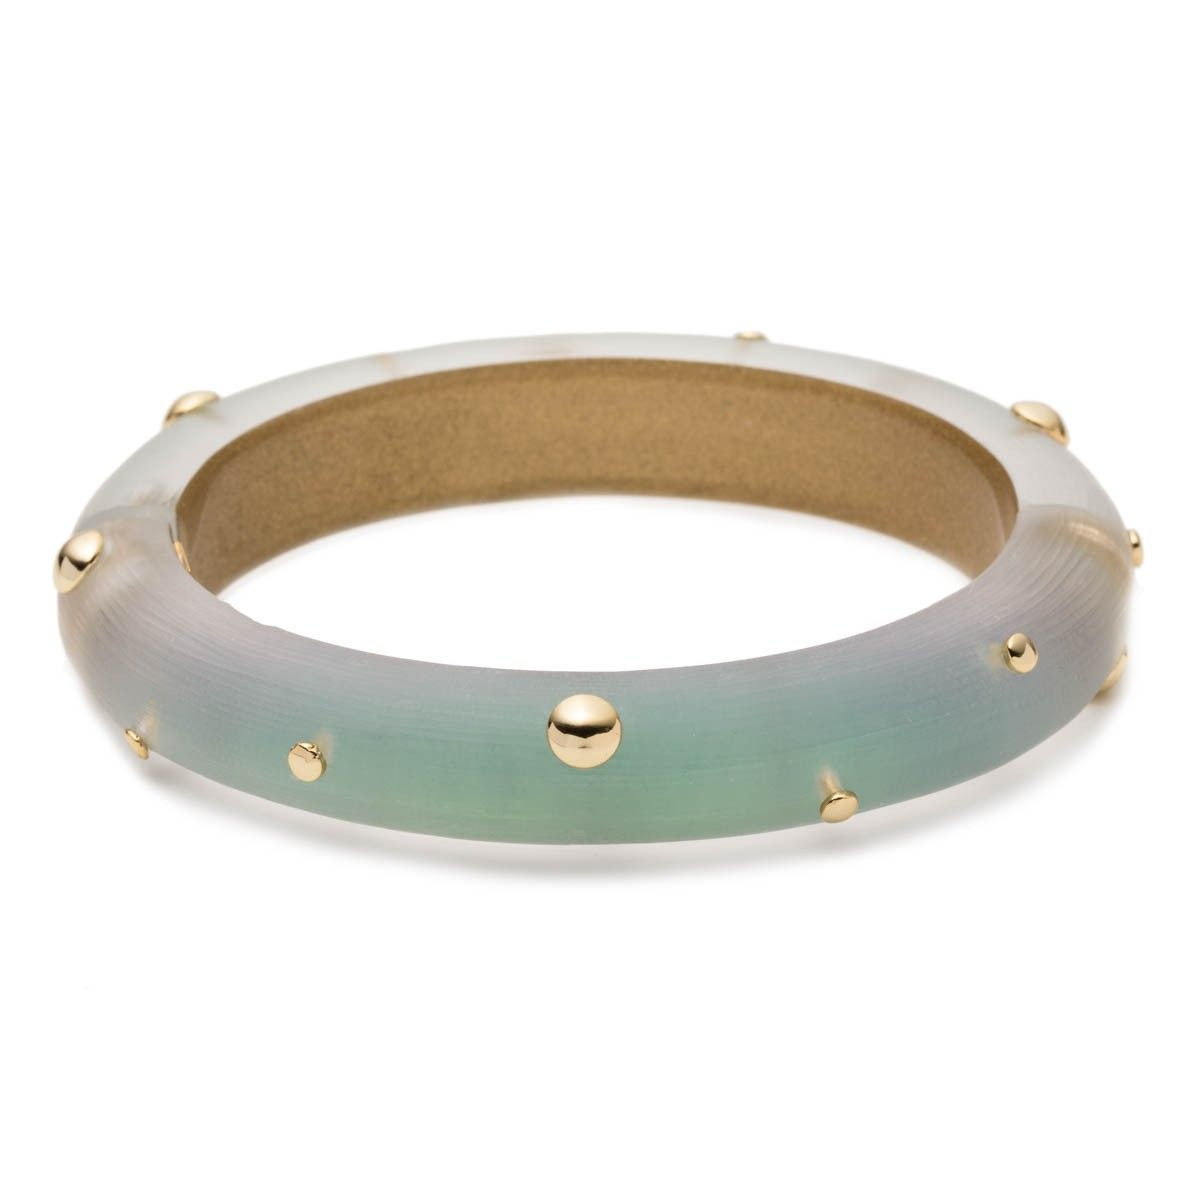 Alexis Bittar Golden Studded Hinge Bangle Bracelet Metallic teal qt9Lo8UJT